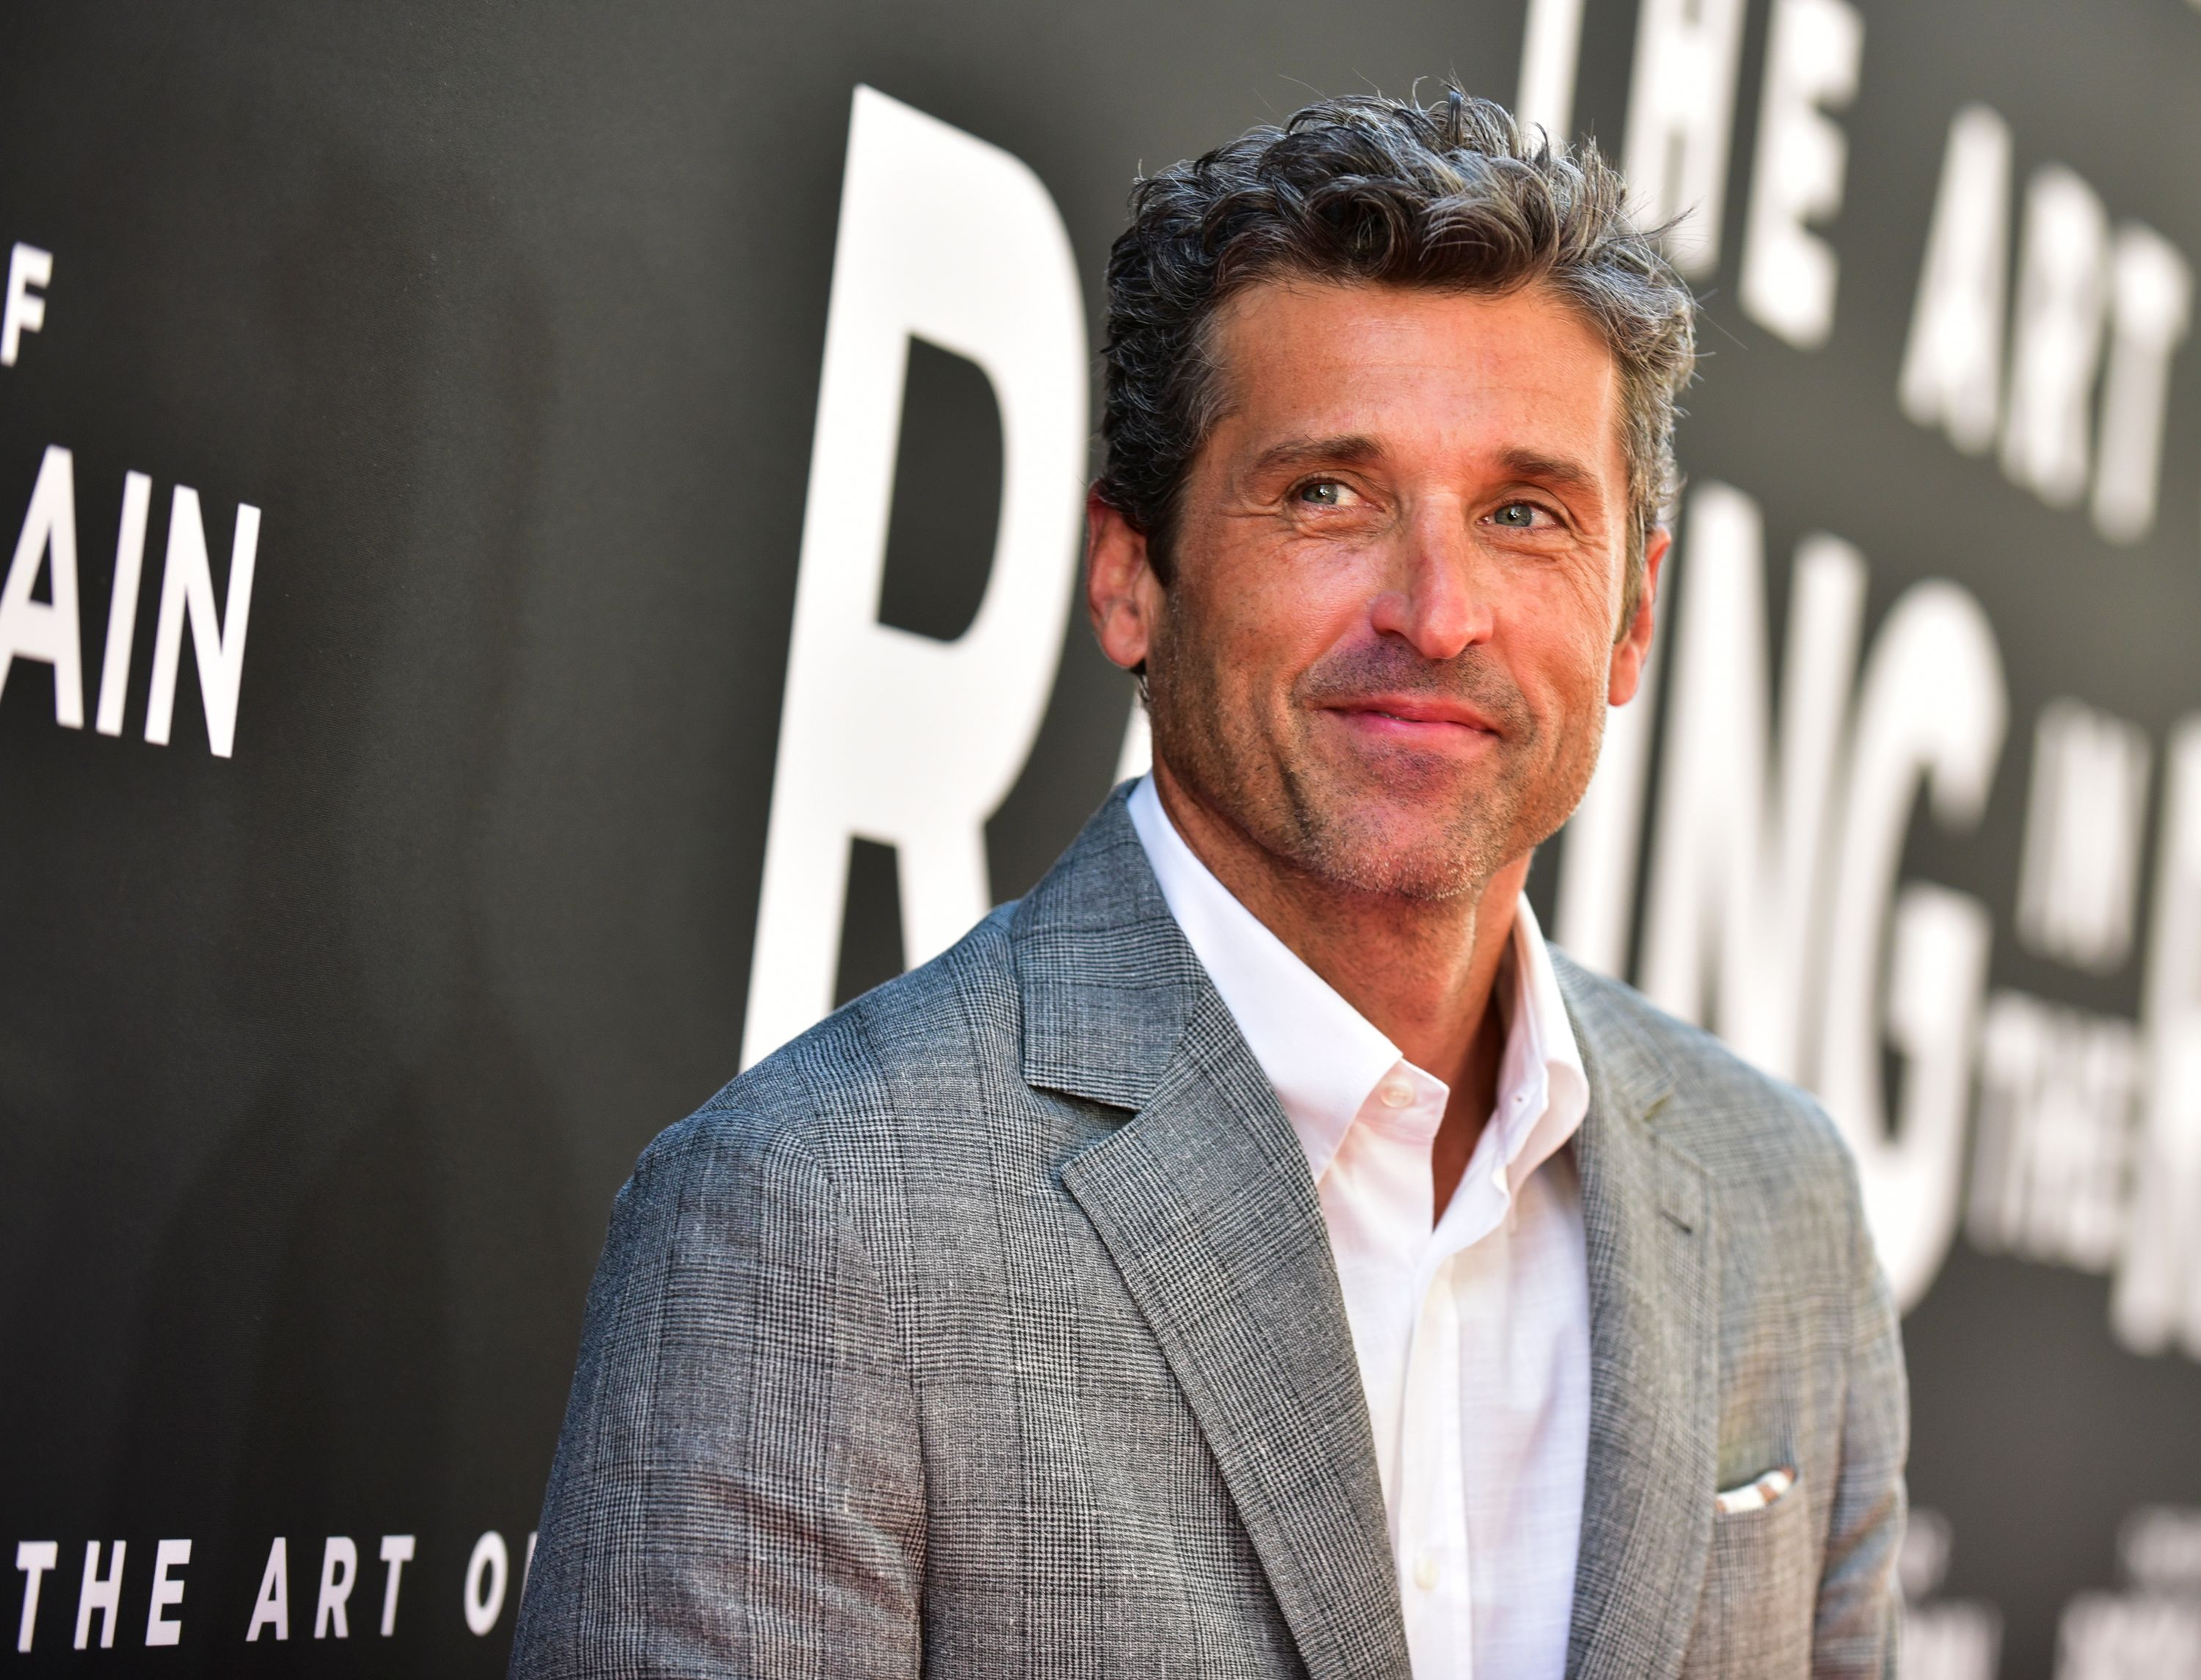 """Patrick Dempsey at the premiere of 20th Century Fox's """"The Art of Racing in the Rain"""" at El Capitan Theatre on August 01, 2019 